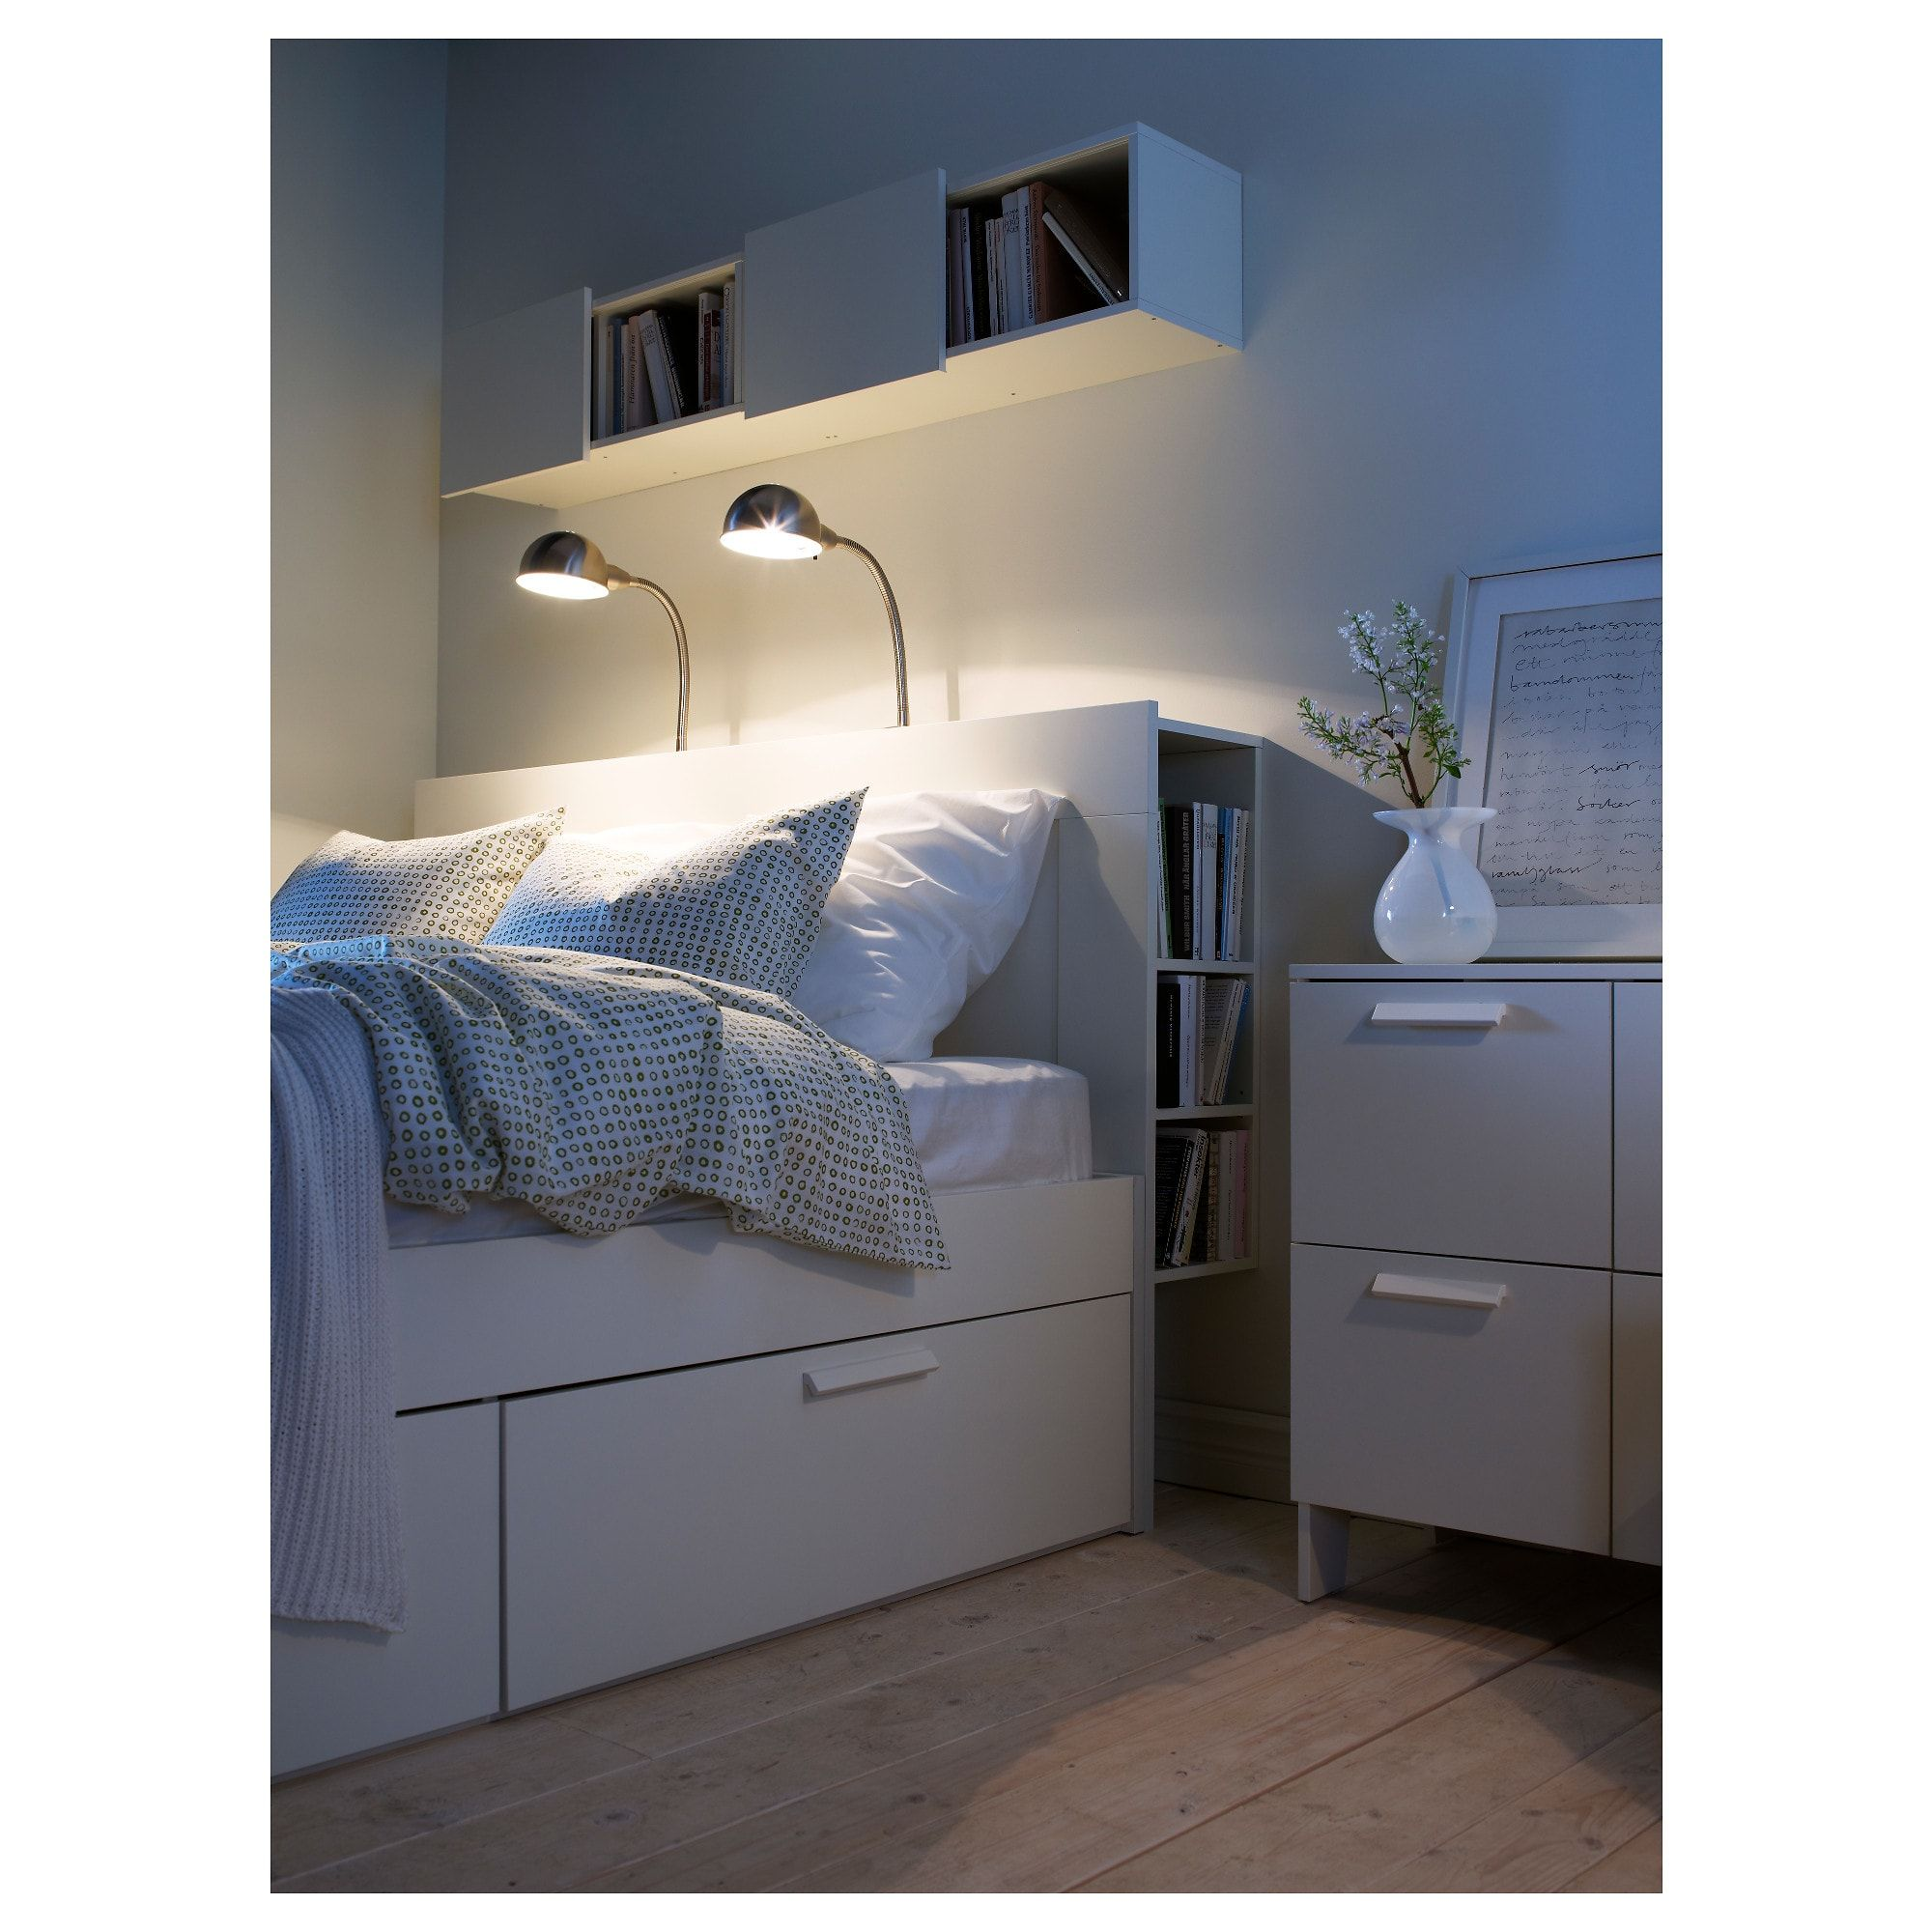 Ikea Brimnes Headboard With Storage Compartment White Small Bedroom Storage Ikea Headboard Bed Frame With Storage